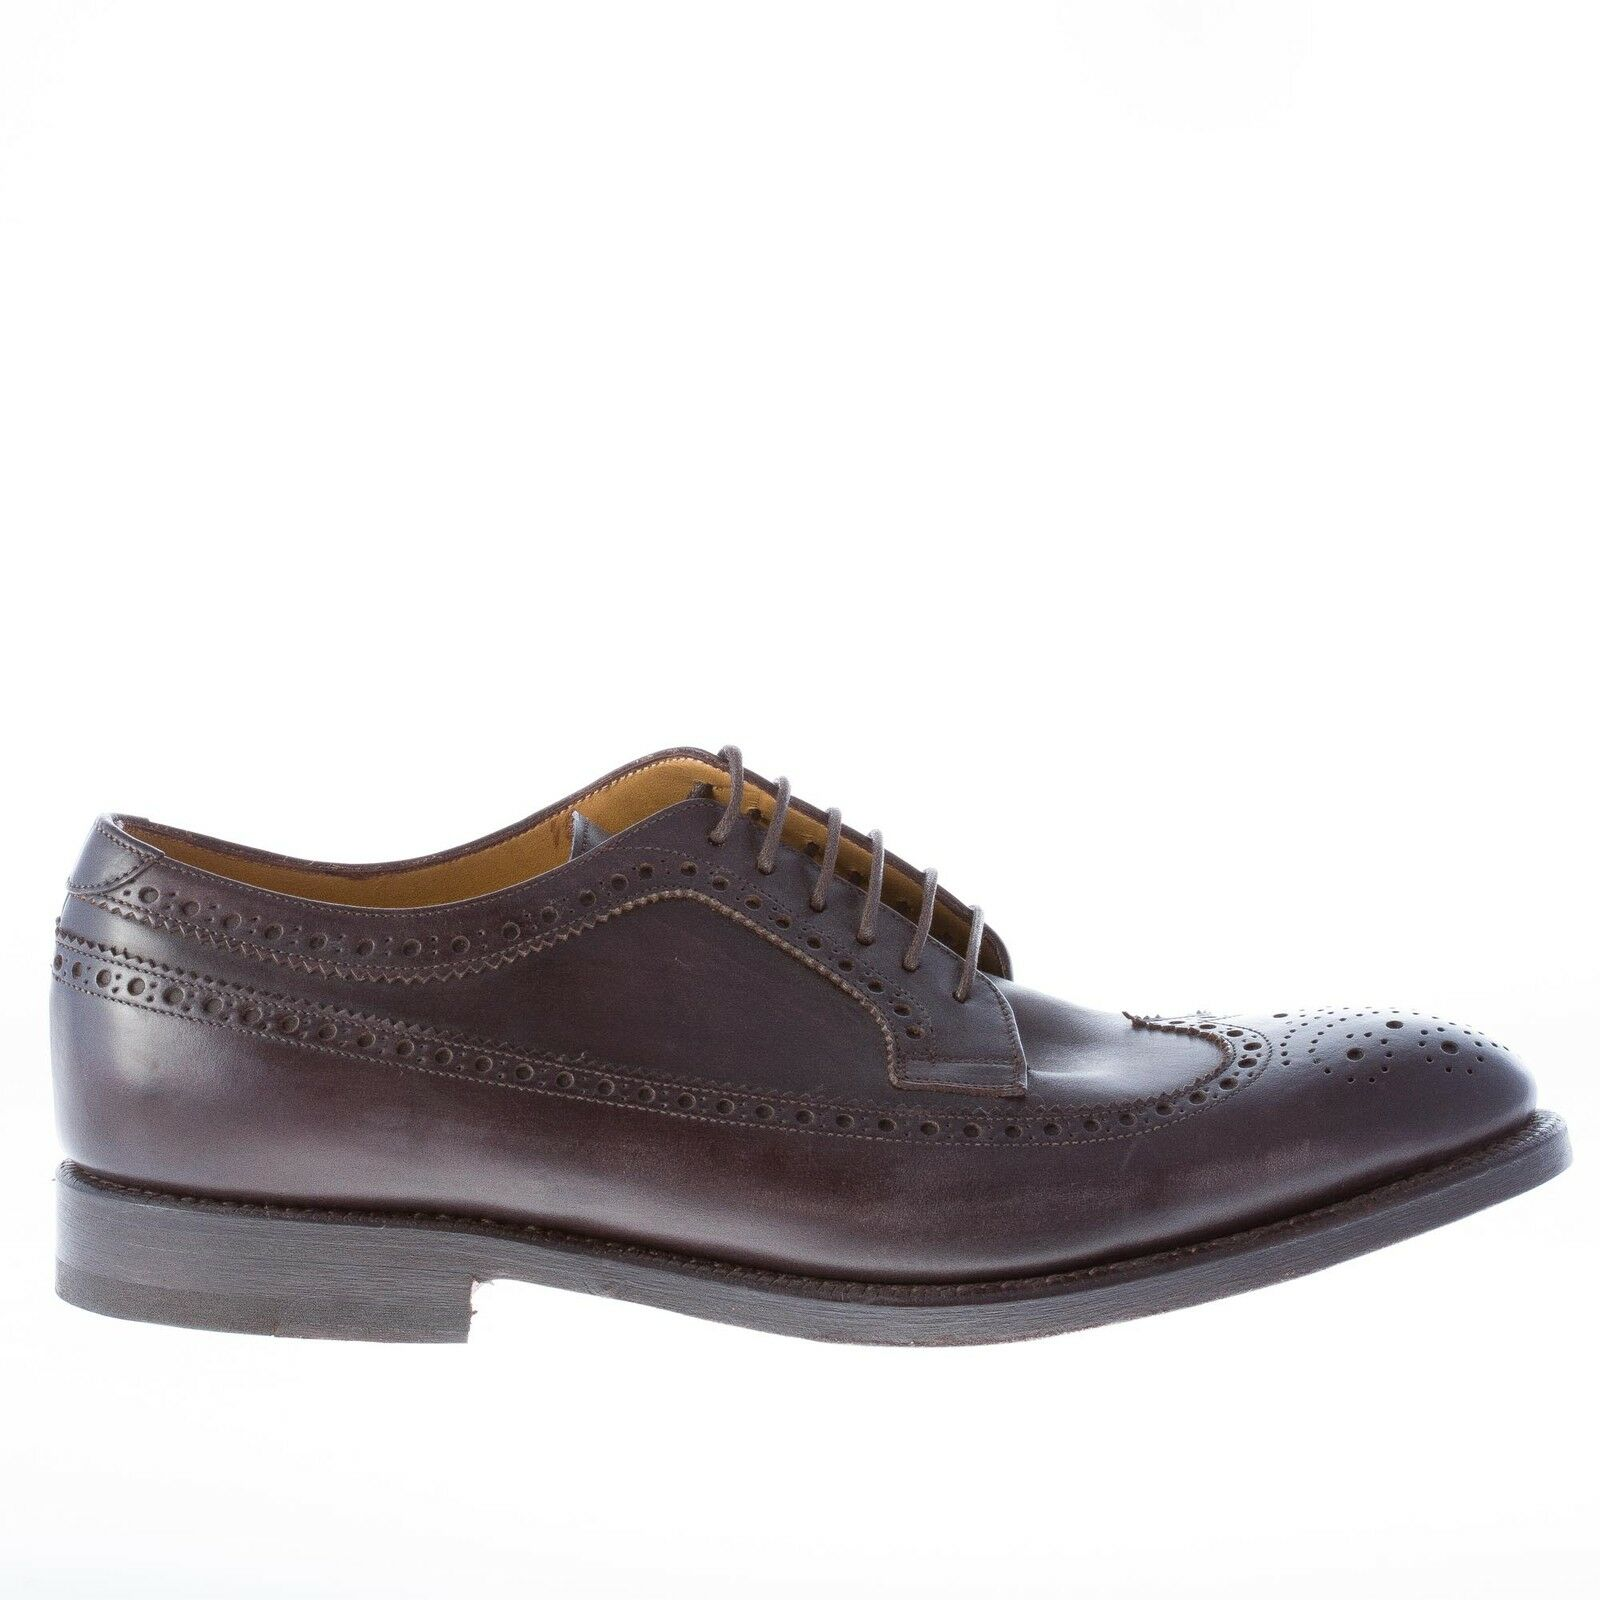 MIGLIORE herren schuhe men shoes made in Italy Dark brown leather oxford brogue